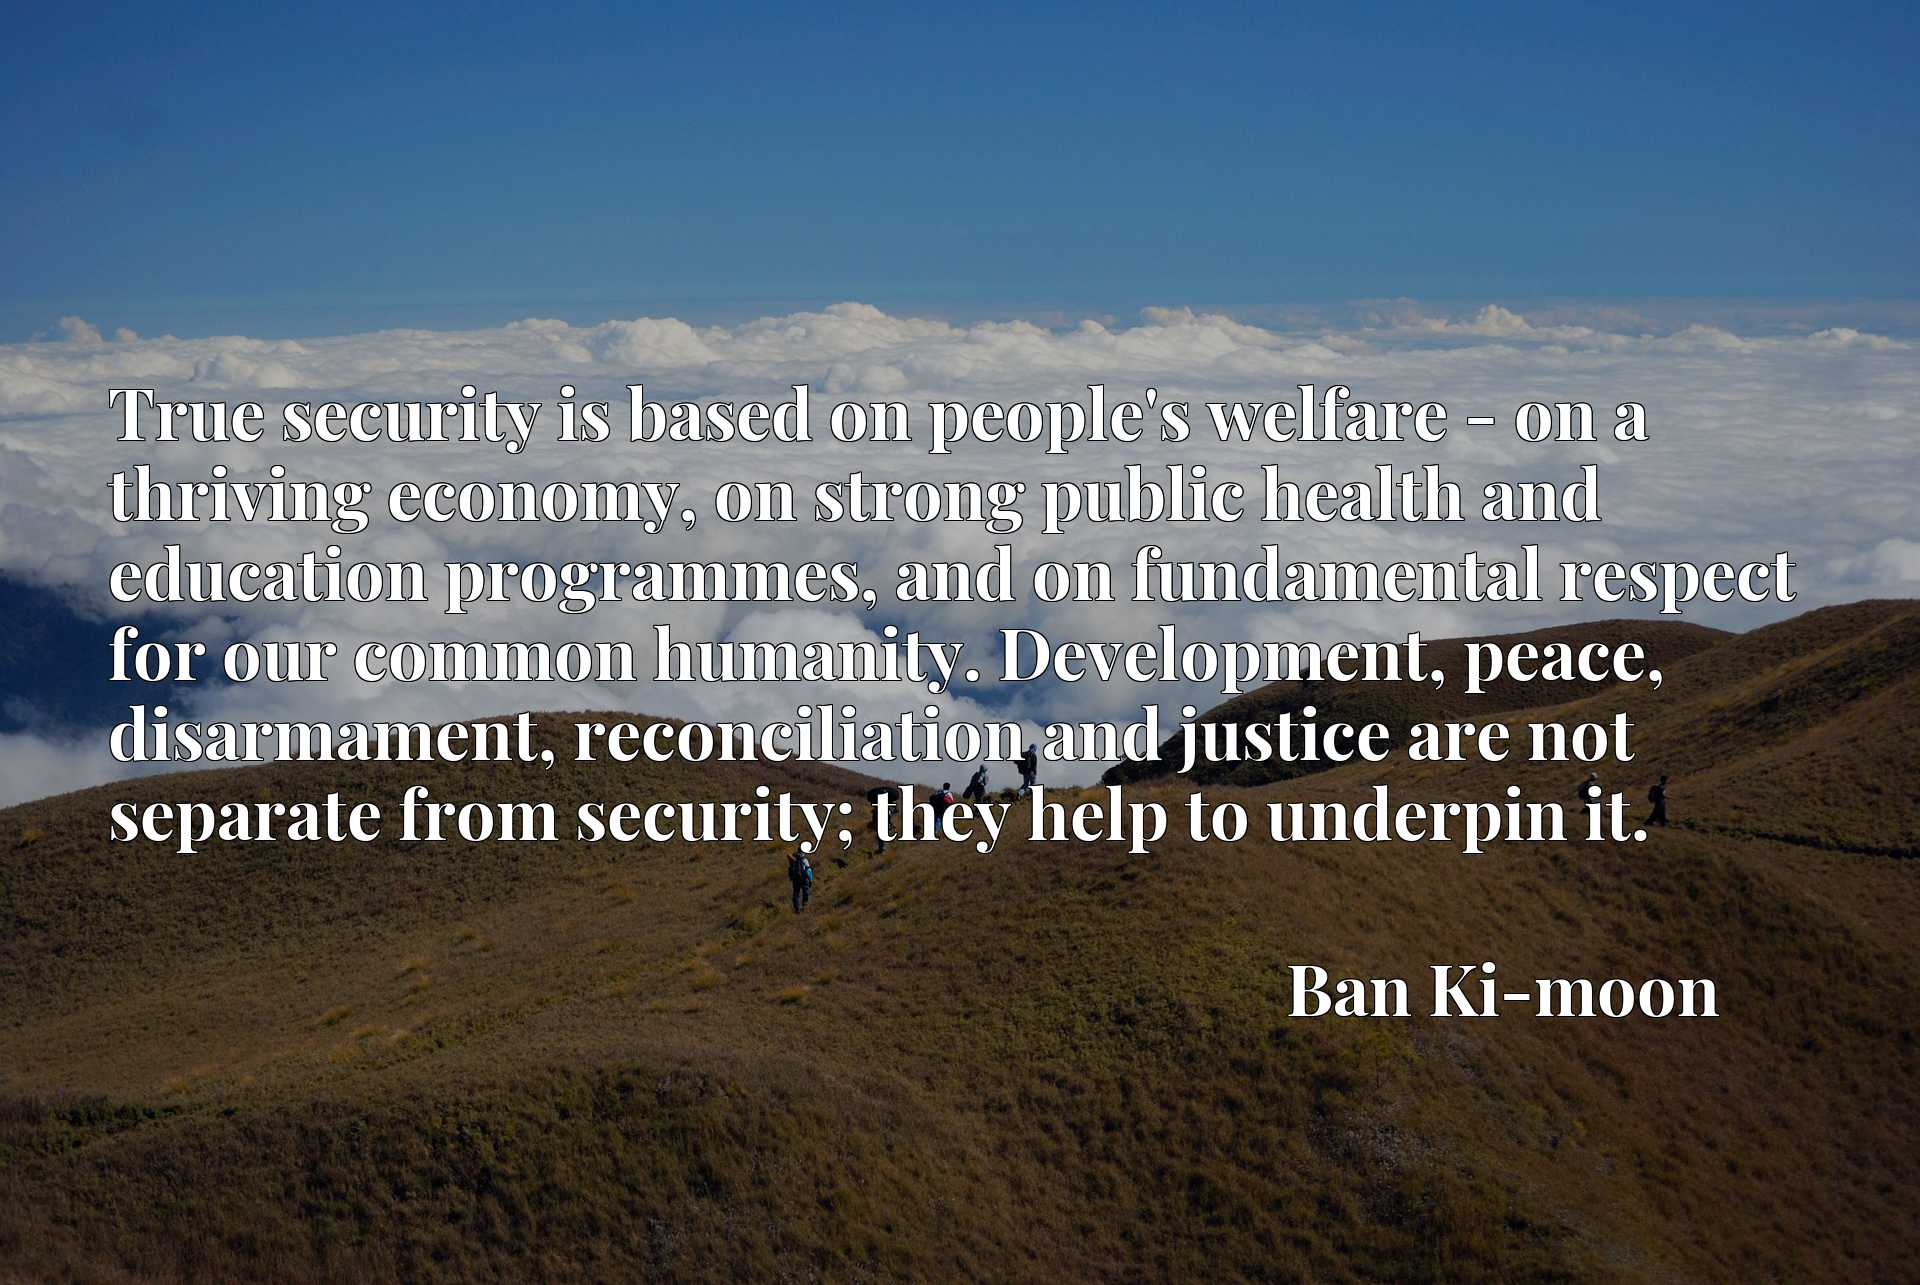 True security is based on people's welfare - on a thriving economy, on strong public health and education programmes, and on fundamental respect for our common humanity. Development, peace, disarmament, reconciliation and justice are not separate from security; they help to underpin it.